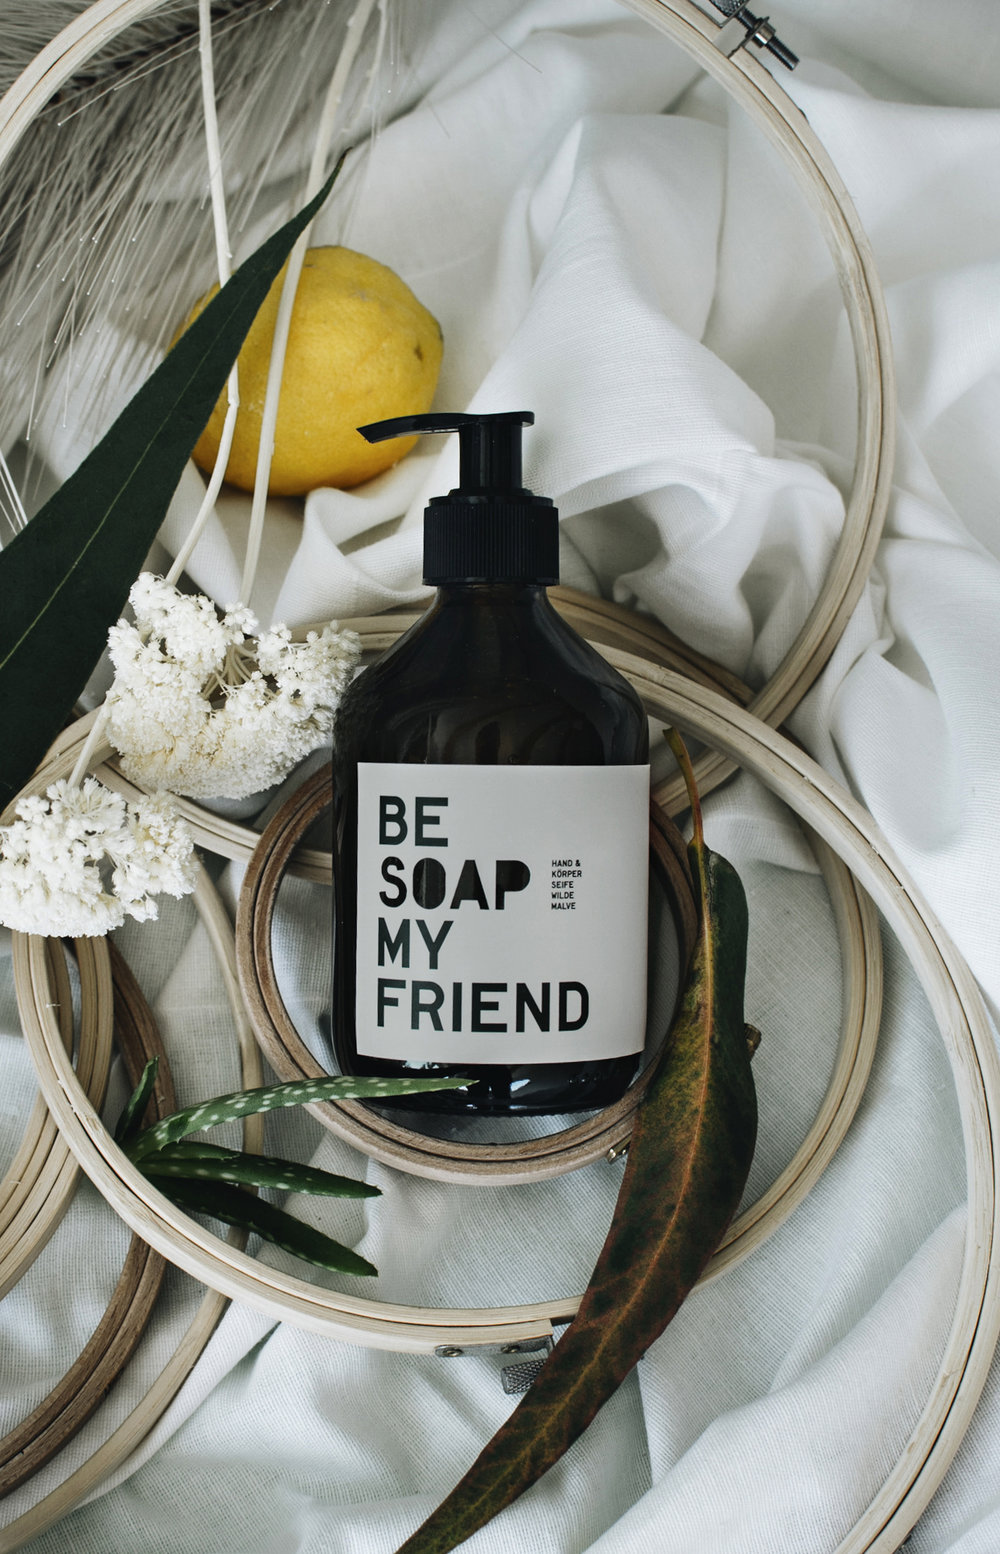 BE SOAP